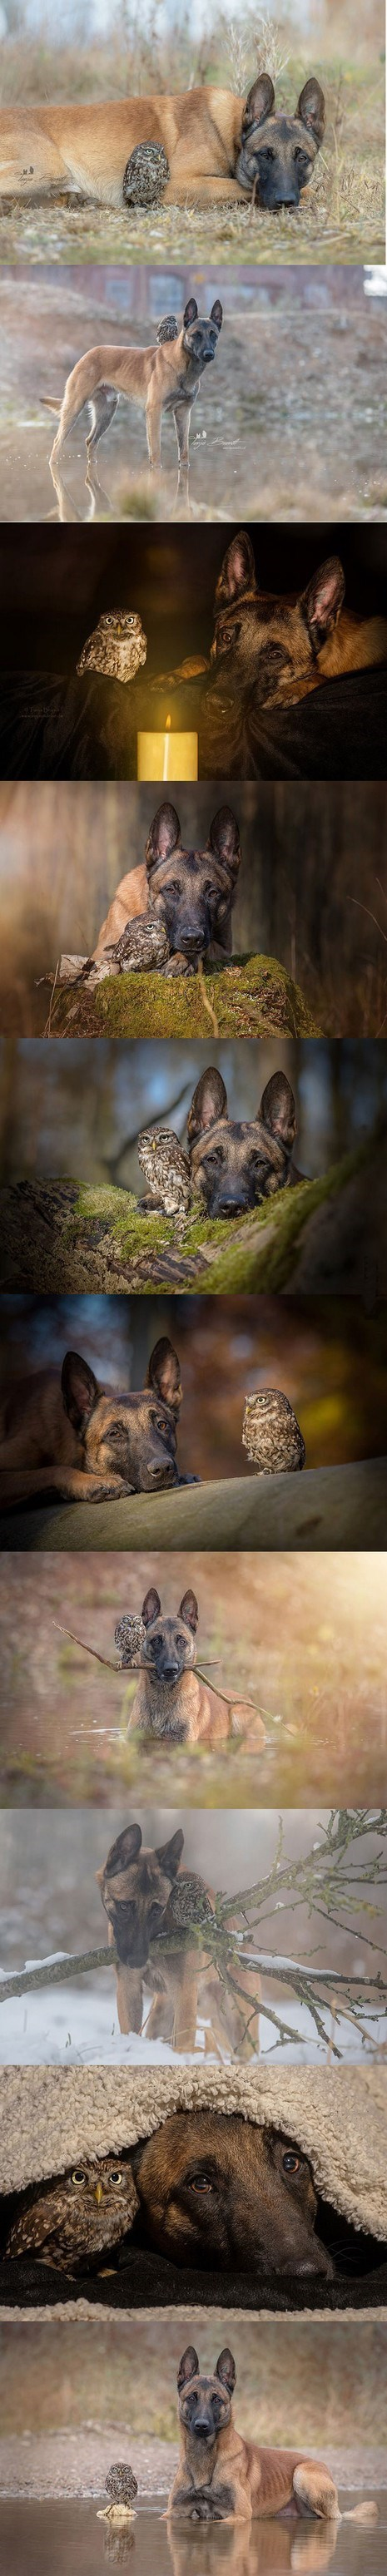 ingo the dog and poldi the owl are the best of friends